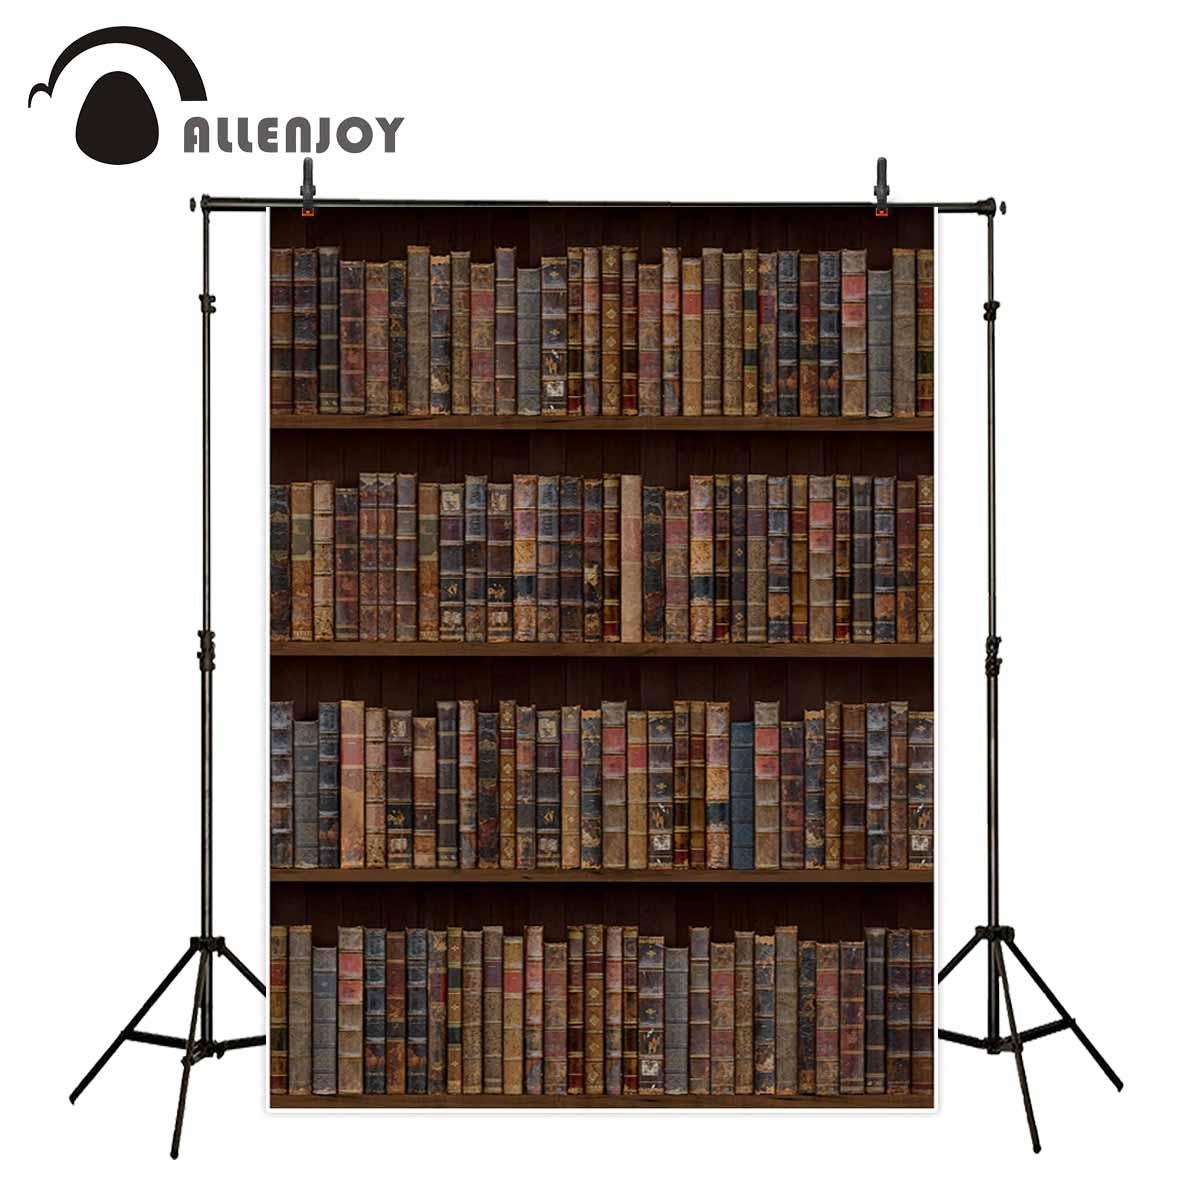 Allenjoy photography backdrops Vintage bookshelf retro background for a photo shoot party decorations photo studio backdrop